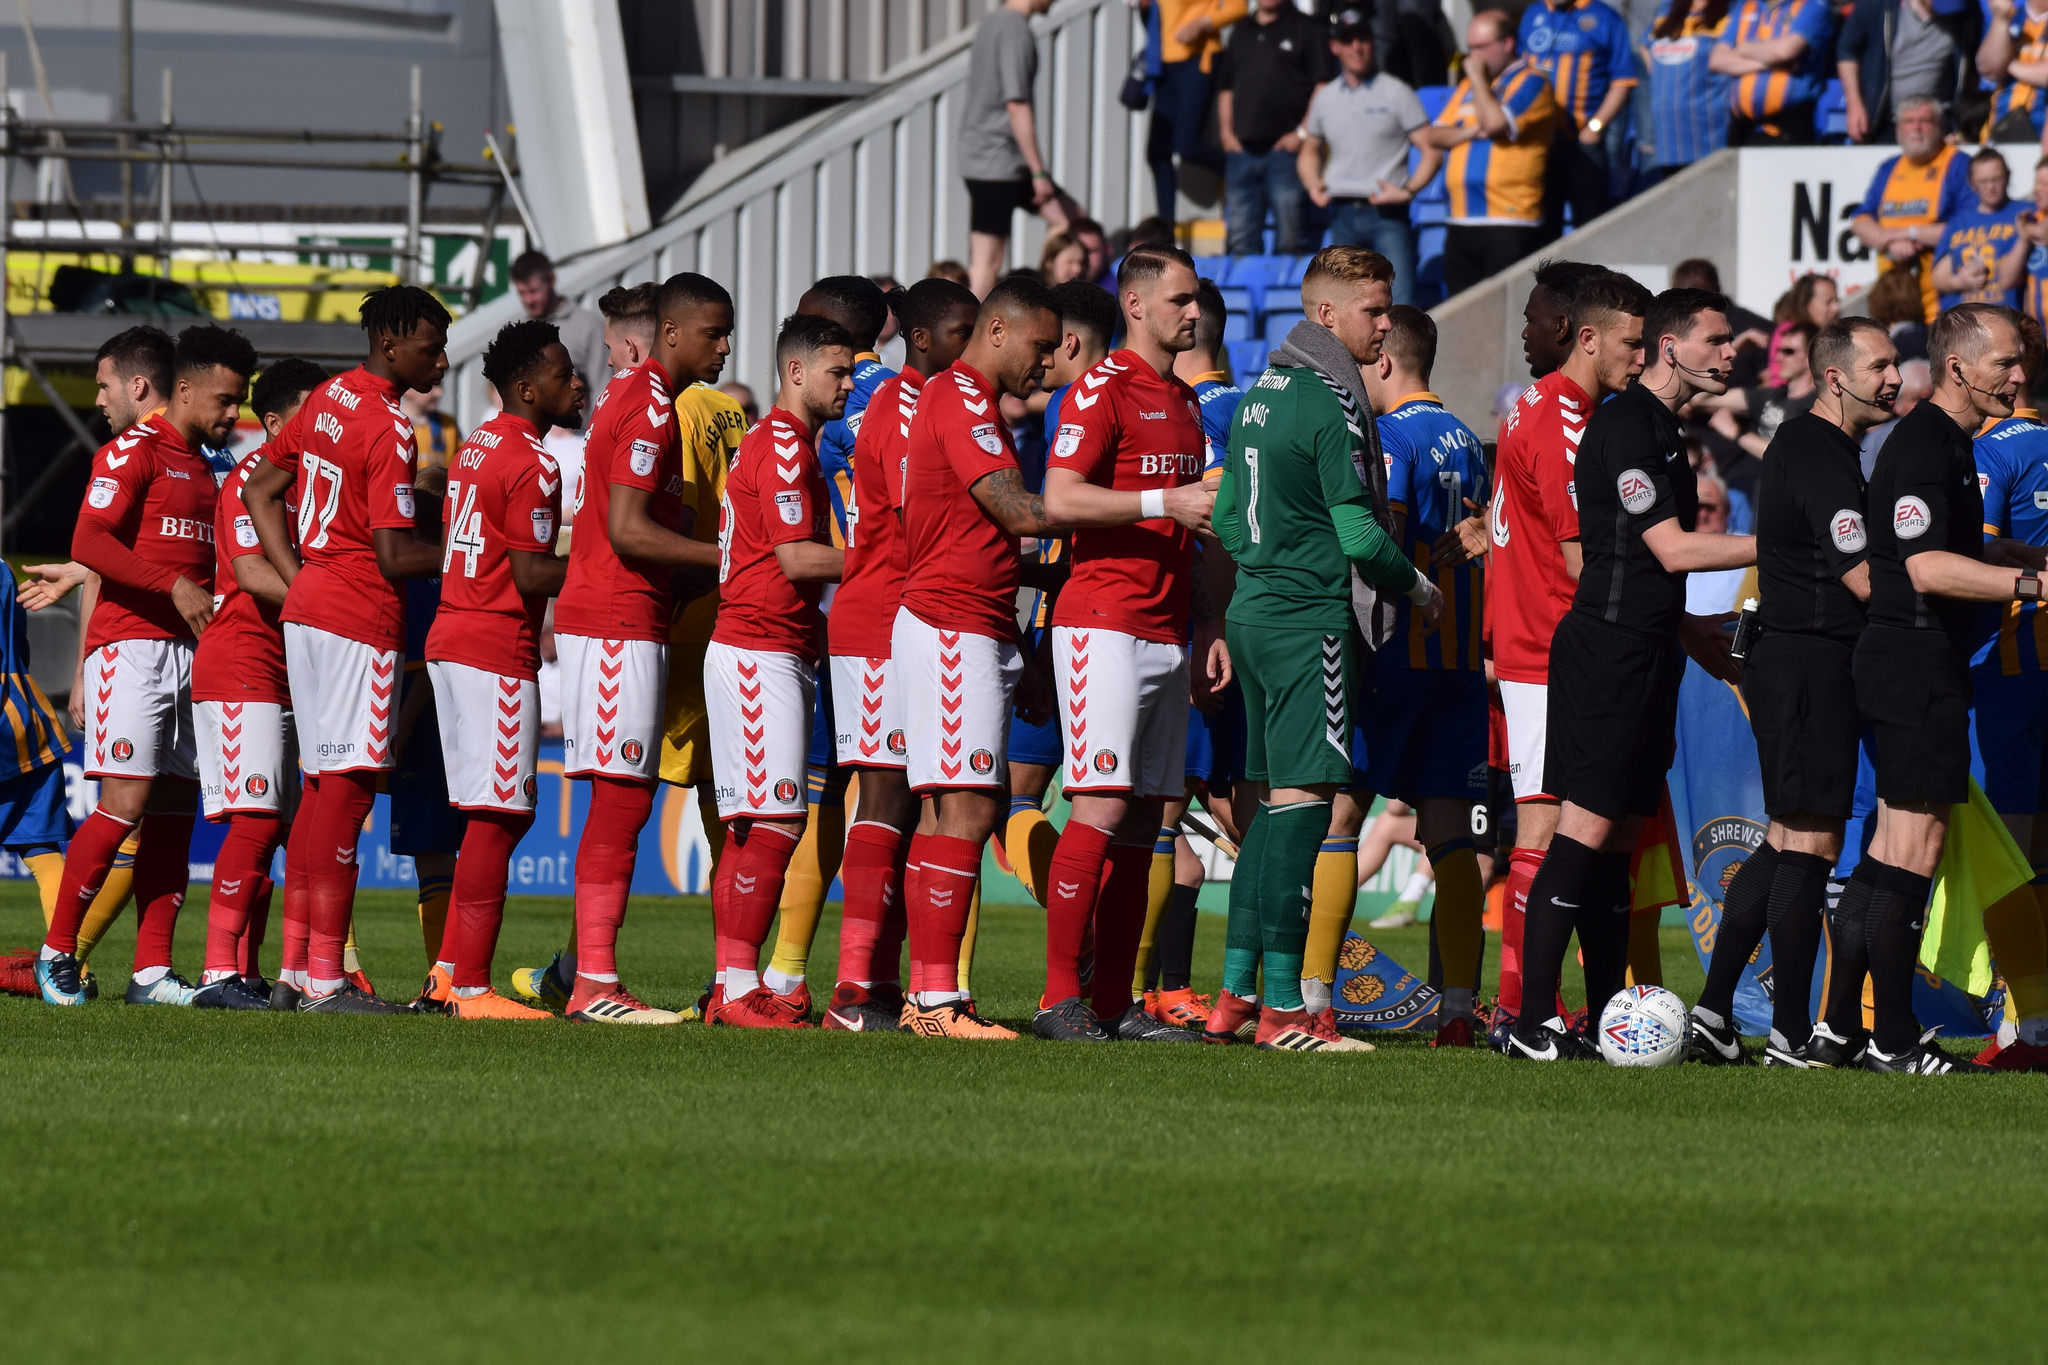 Charlton players at New Meadow | Picture: Kyle Andrews